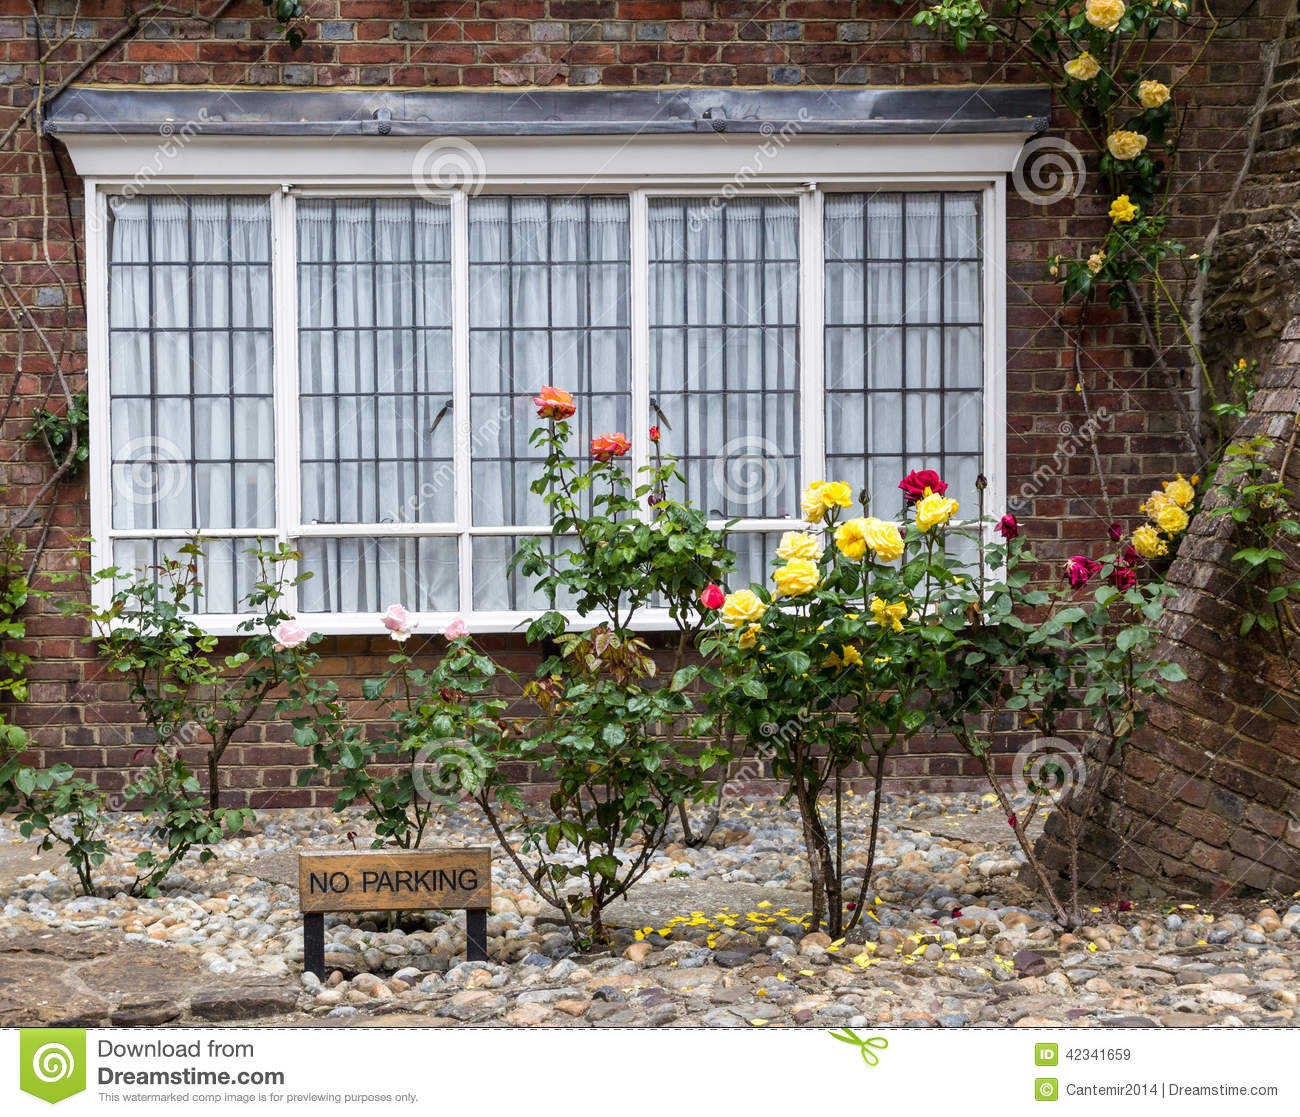 A brick house with roses on the front porch seen in rye kent